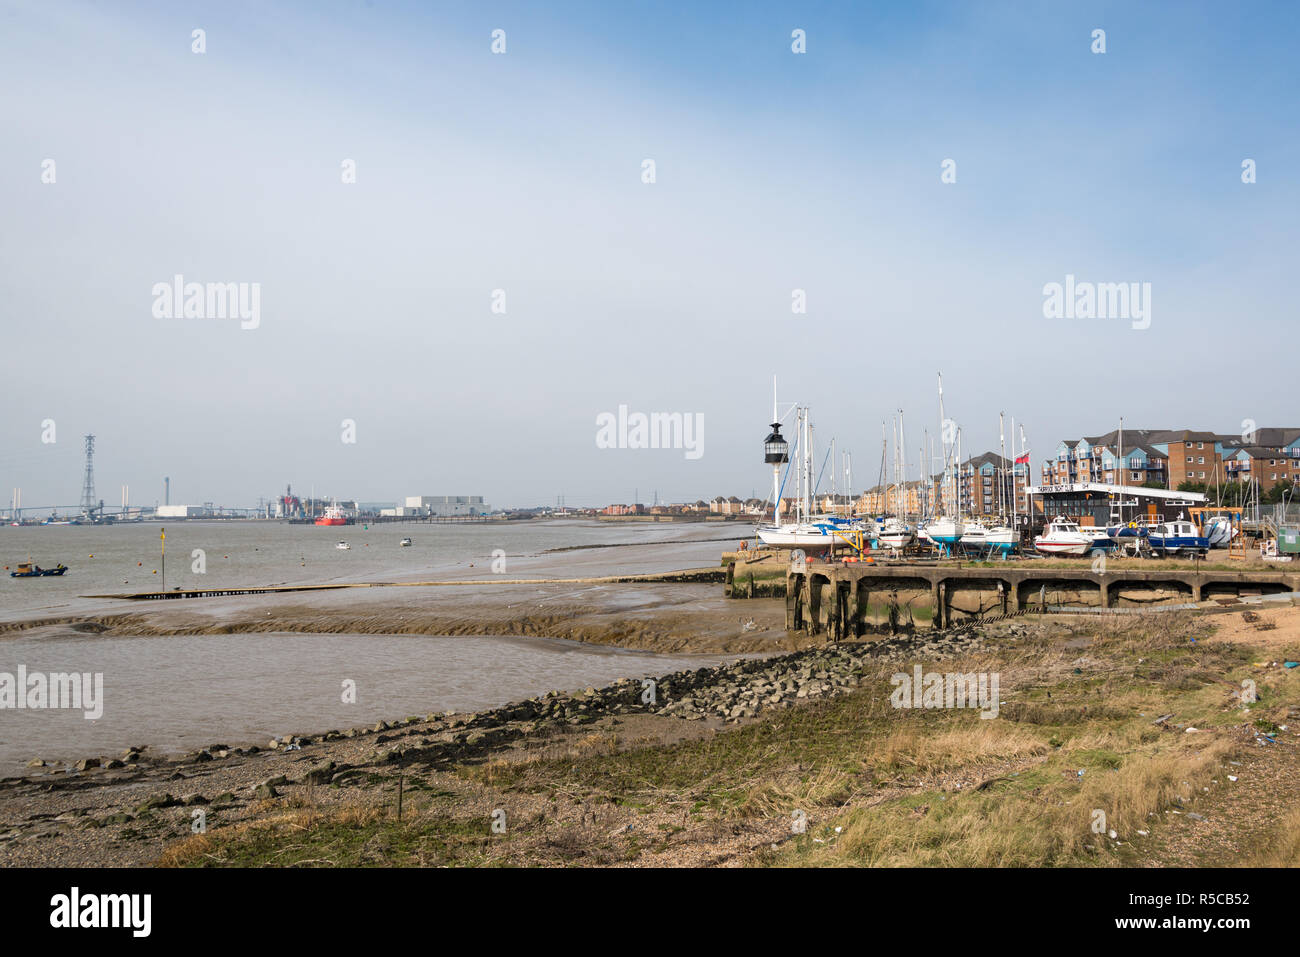 The town of Grays on the Thames Estuary, Essex, UK - Stock Image